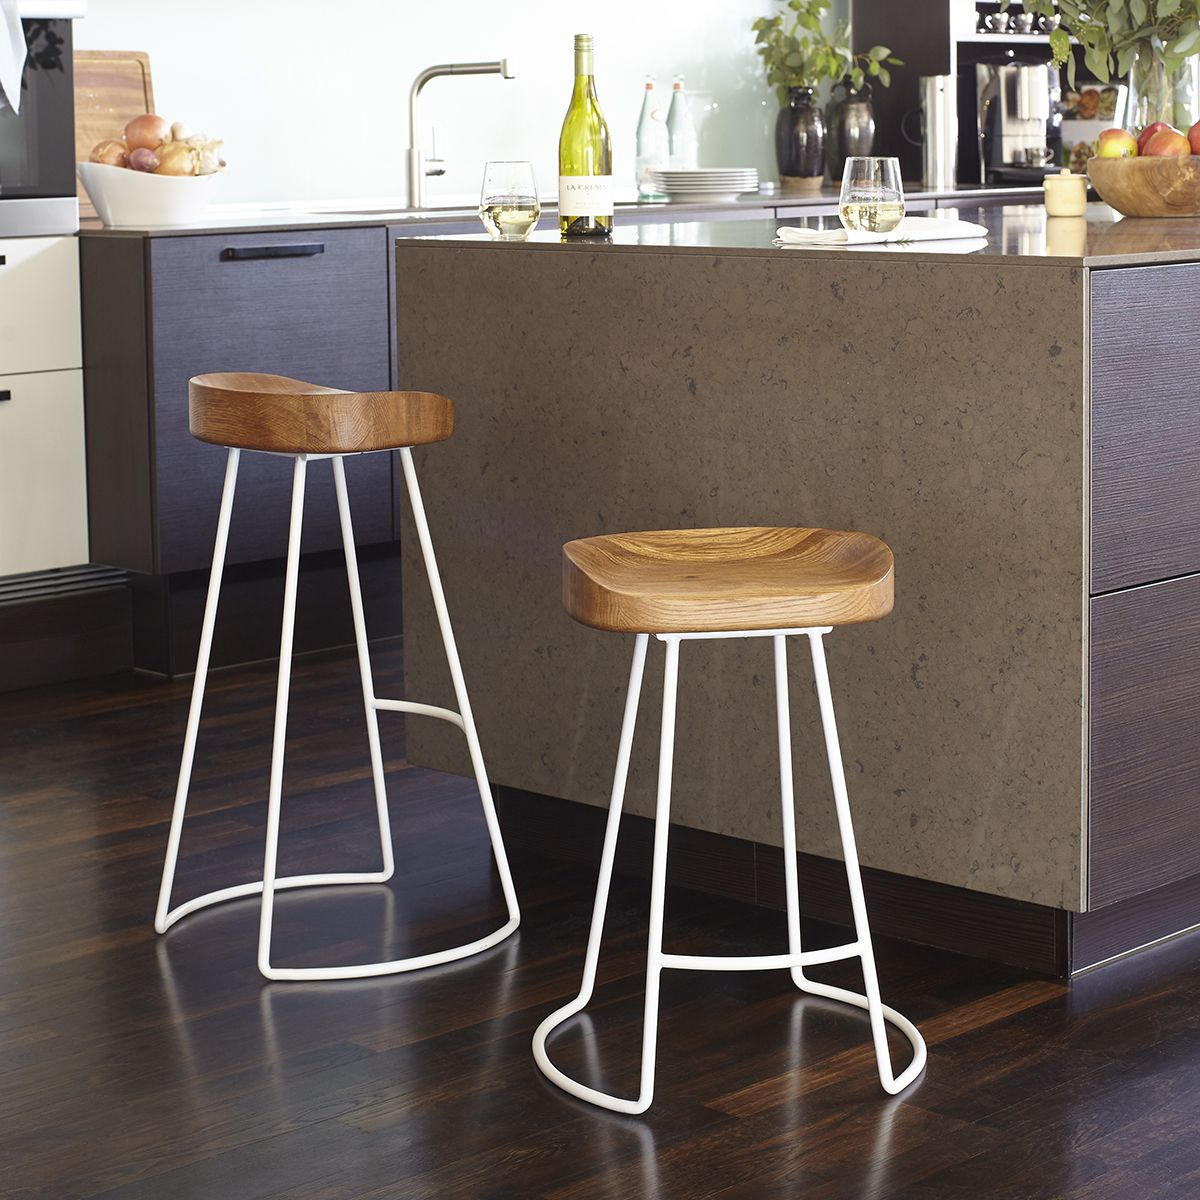 Painted Smart And Sleek Stool Short Products